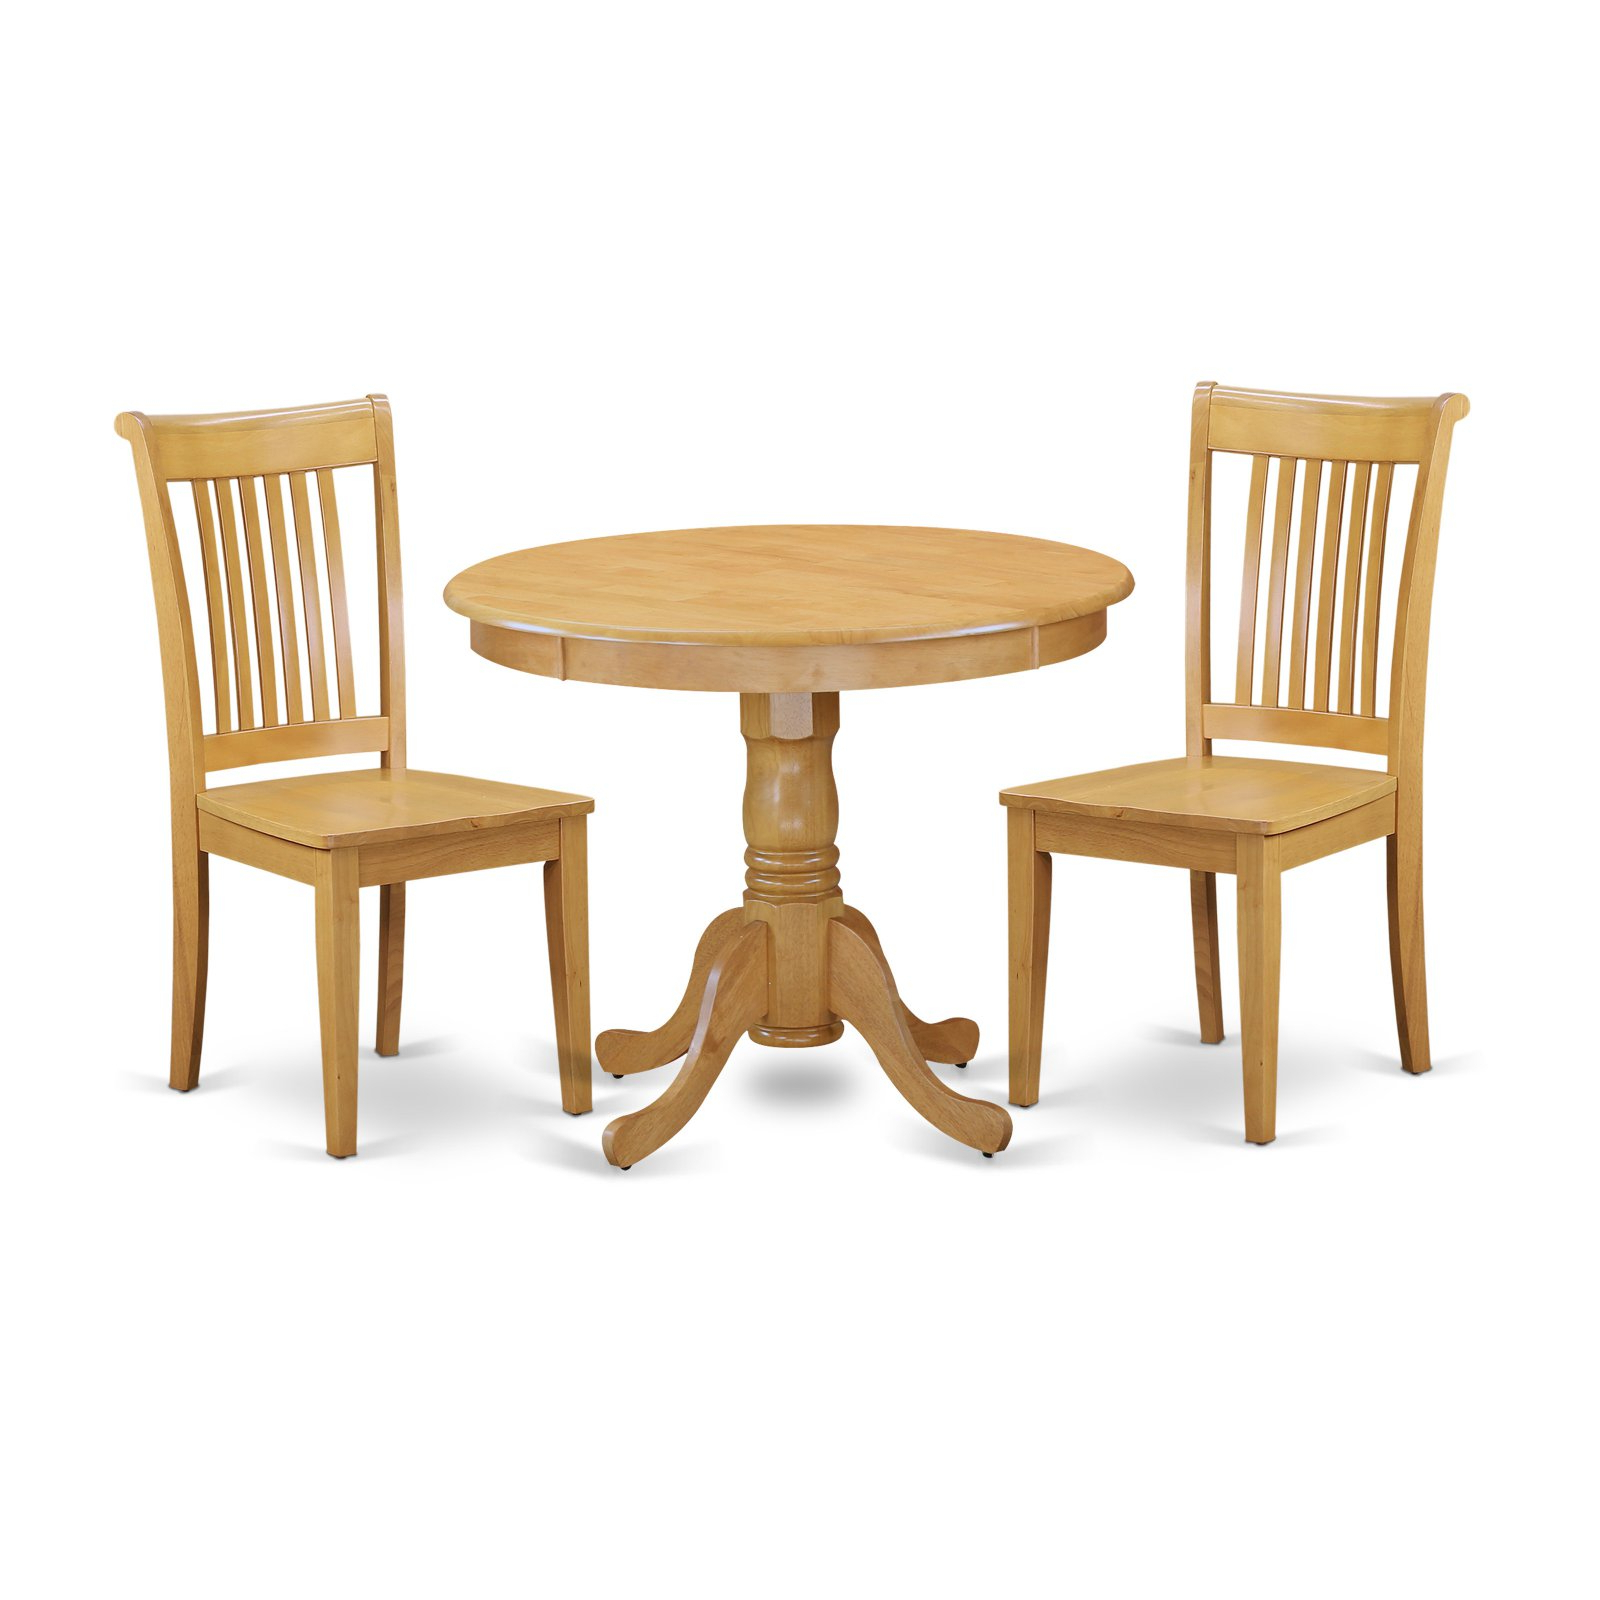 Most Recently Released East West Furniture Antique Anpo3 Three Piece Round Pedestal Dining With Regard To Smyrna 3 Piece Dining Sets (View 10 of 25)